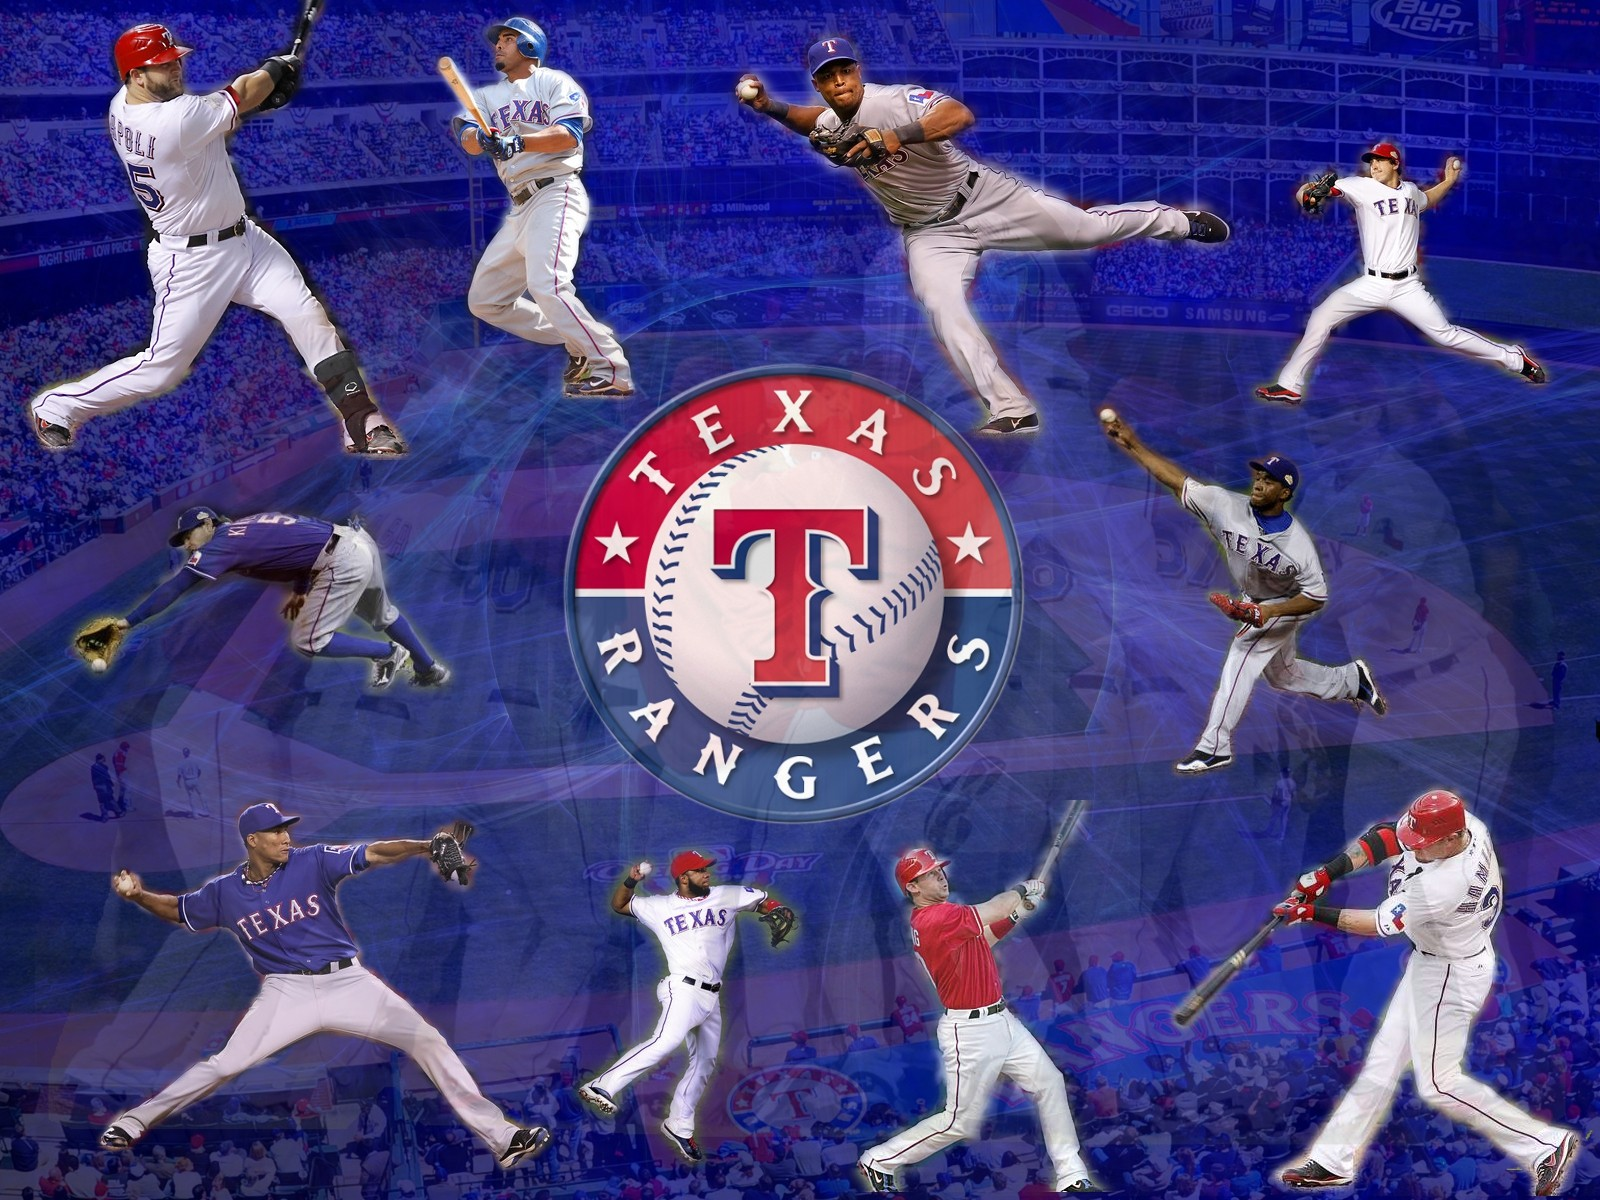 texas rangers wallpapers and screensavers - wallpapersafari